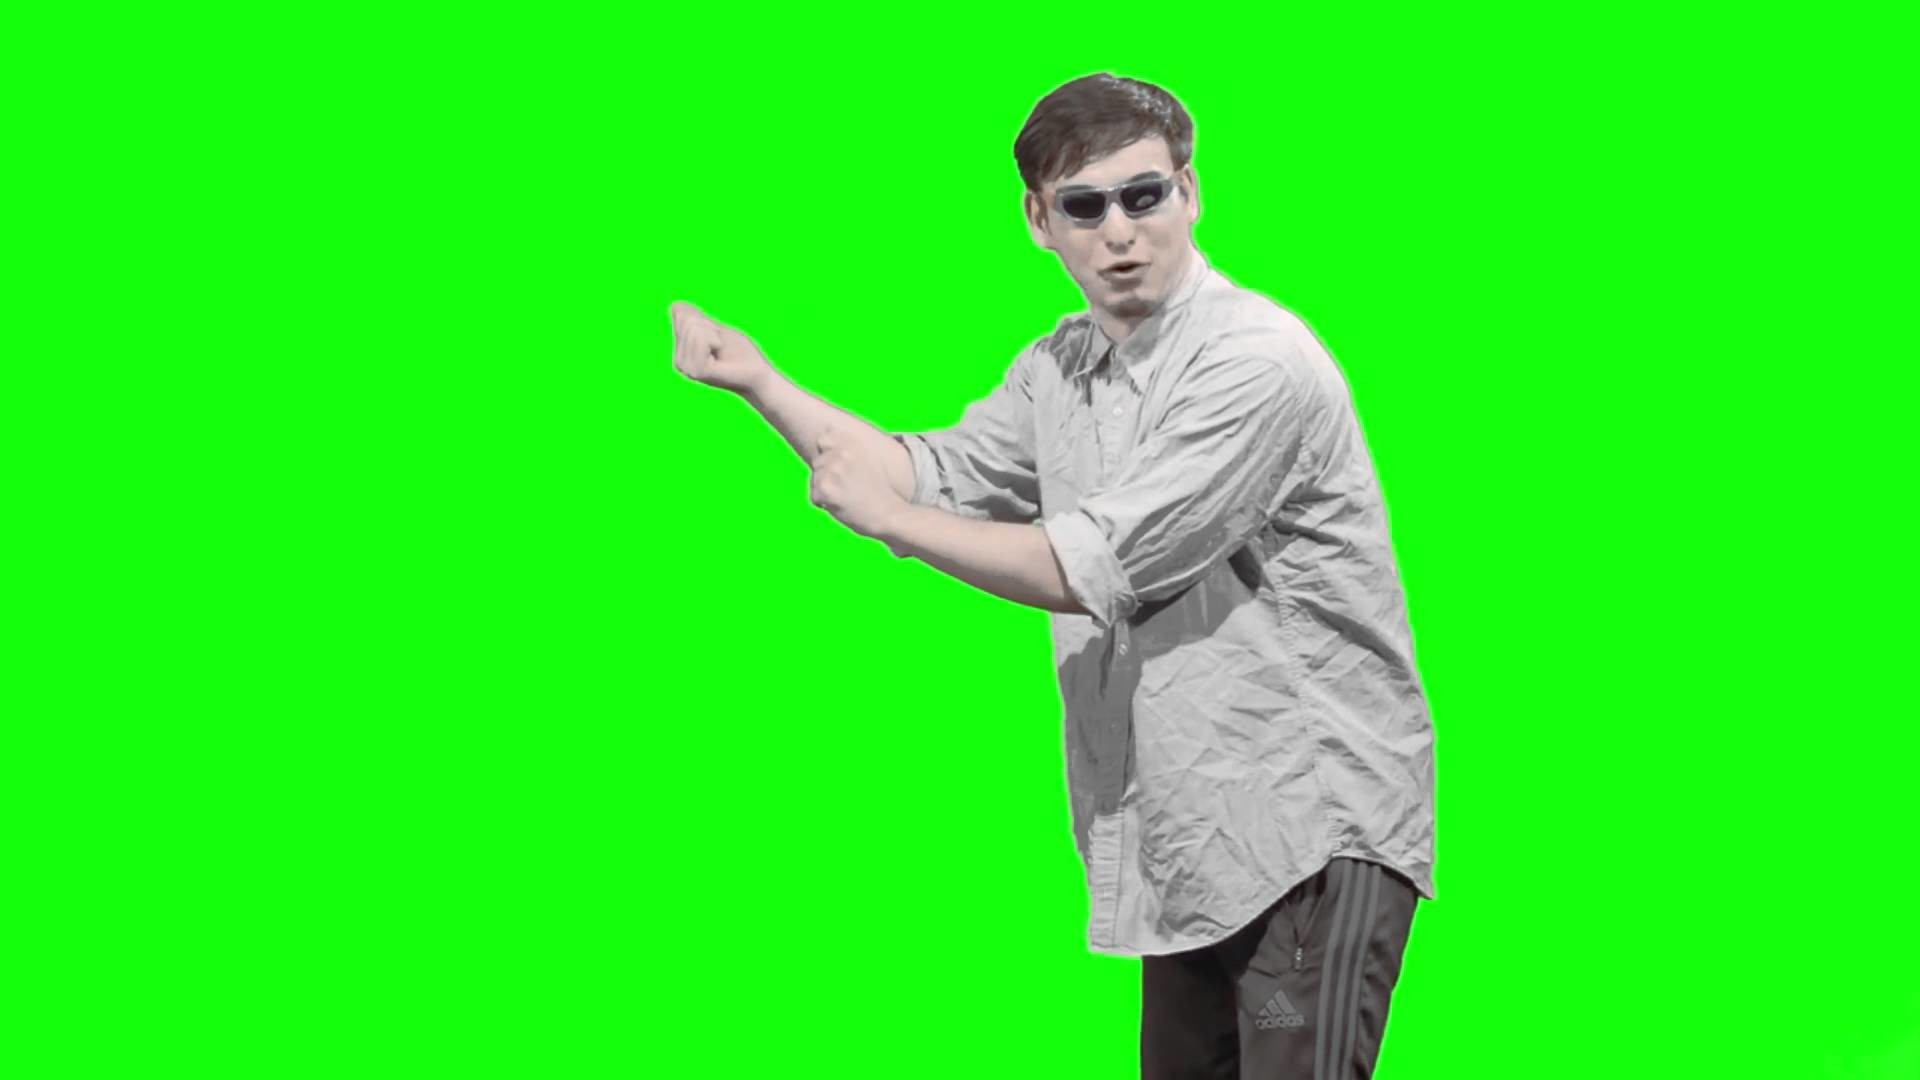 1920x1080 Filthy Frank - Side Ways For Attention - Green Screen Free Download